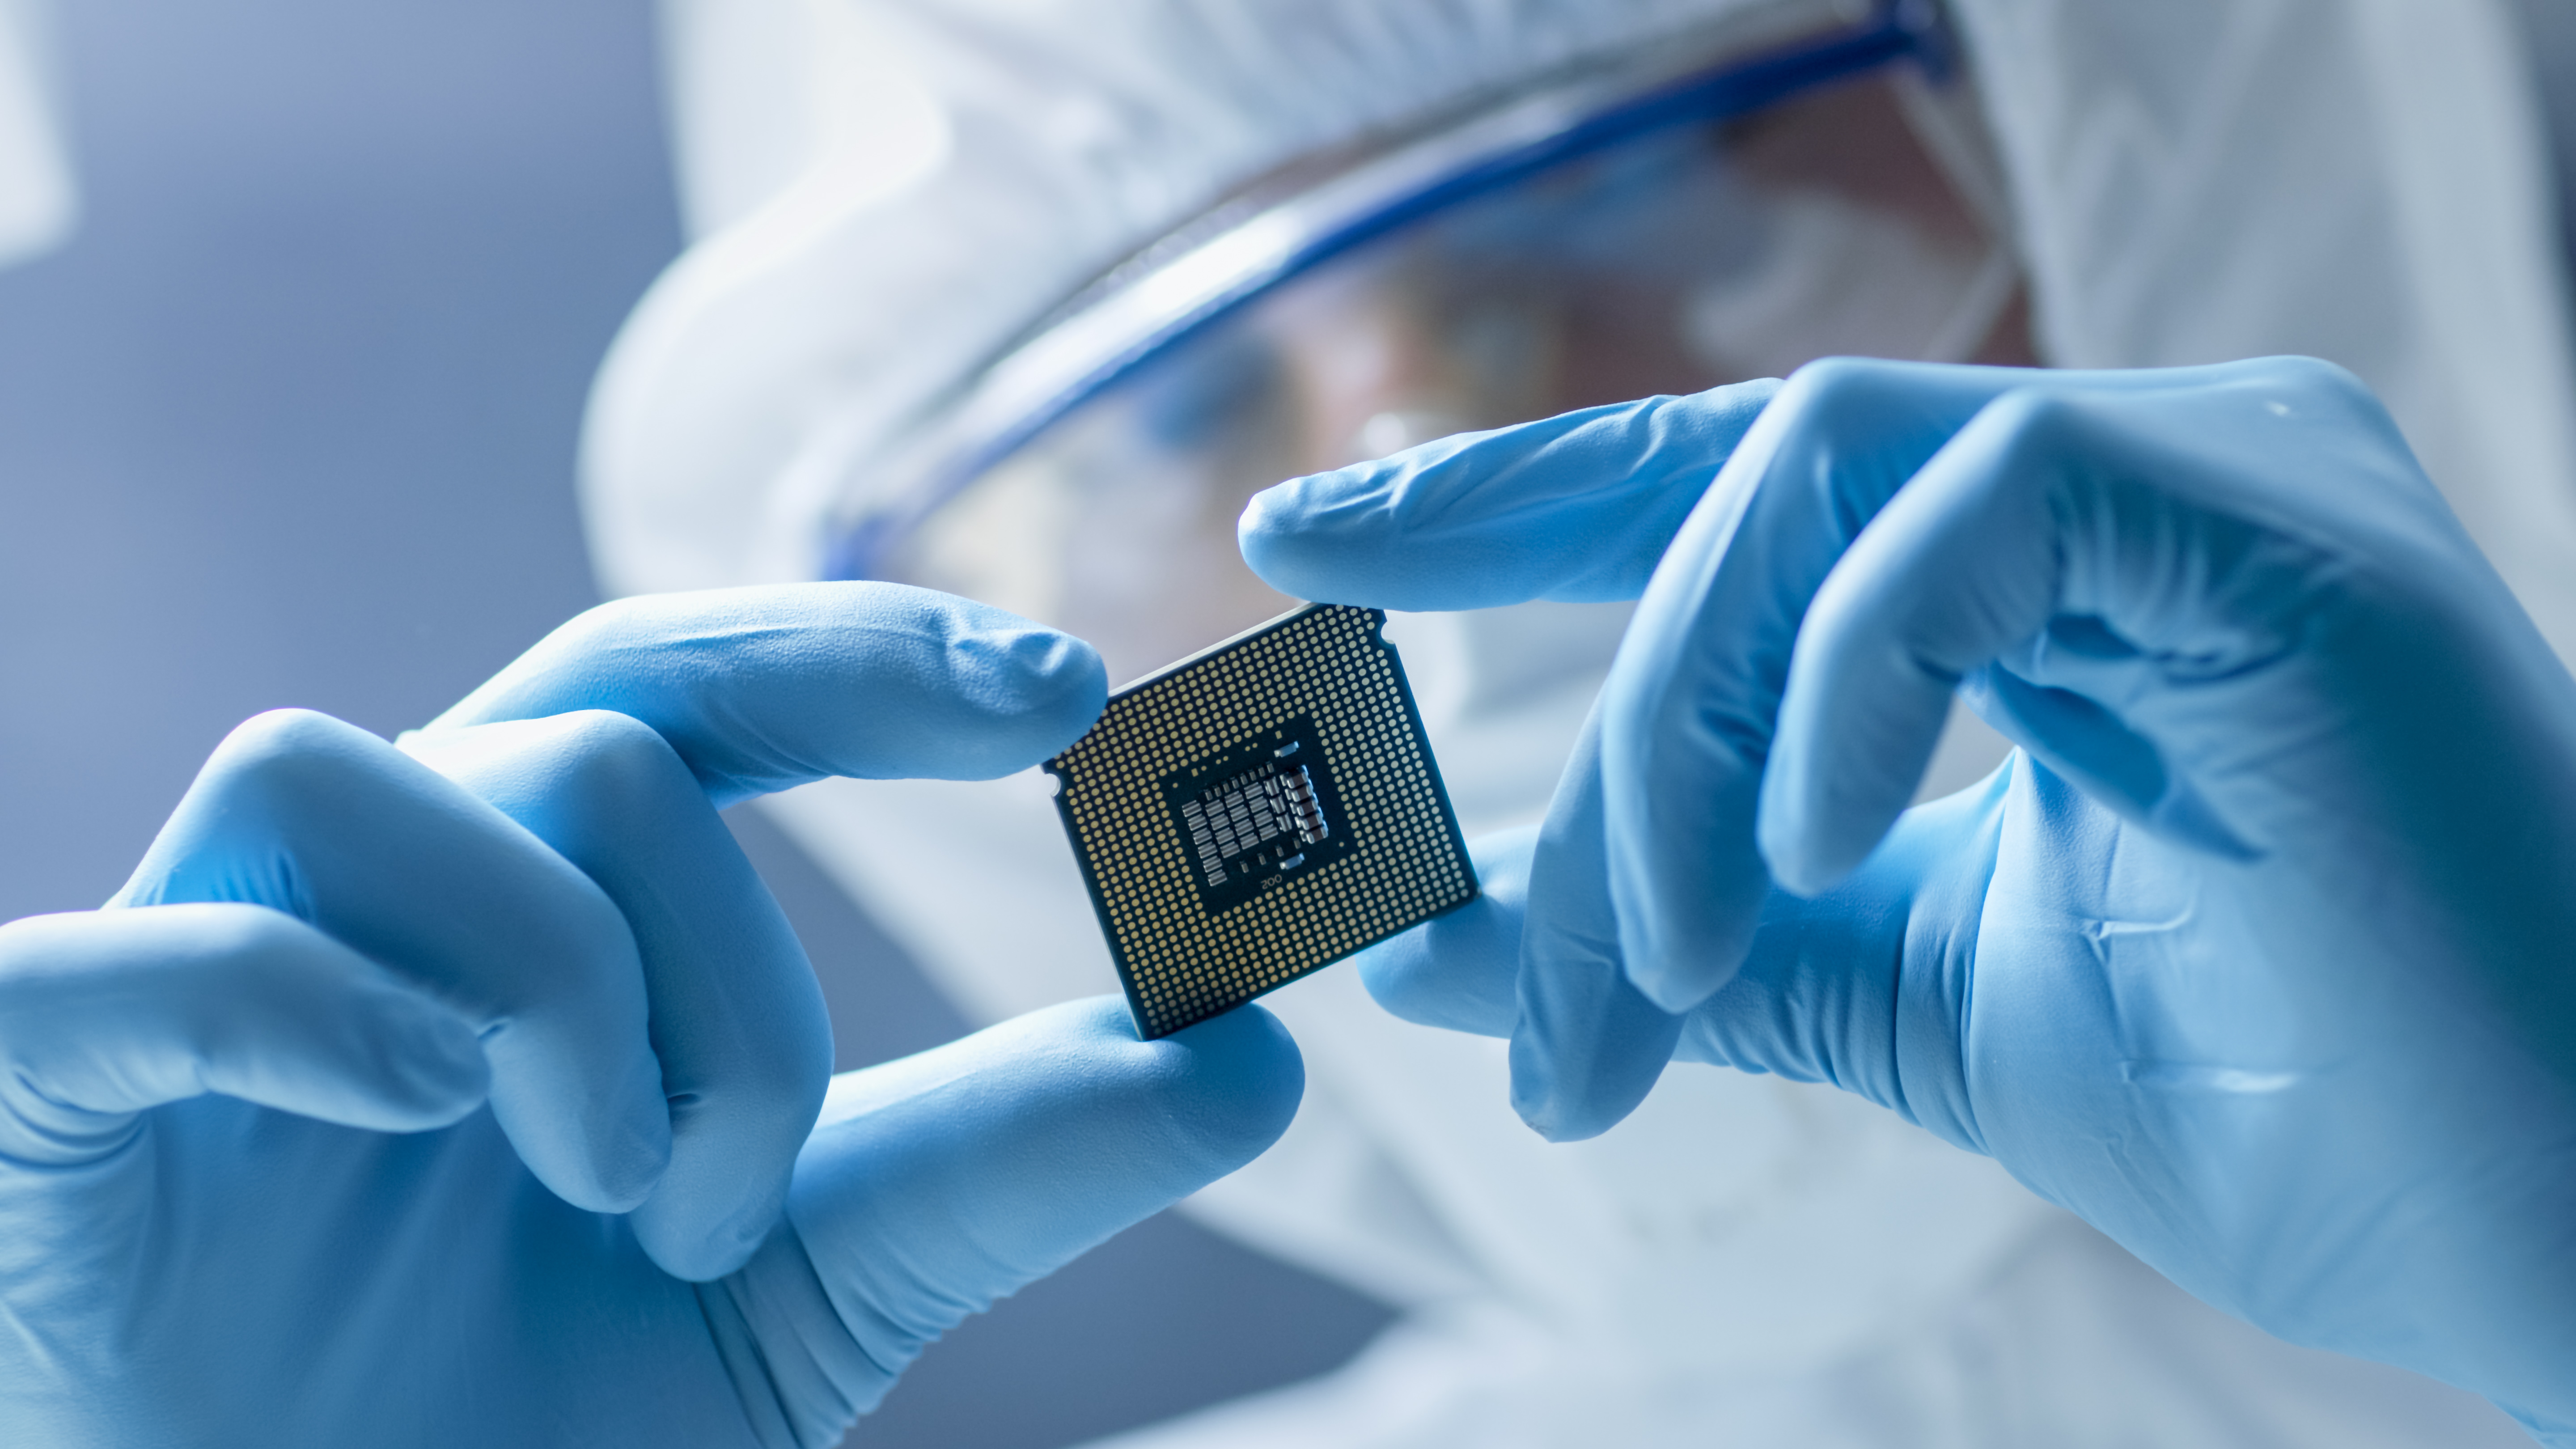 Semiconductor technician- old Elec_career_img027.jpg